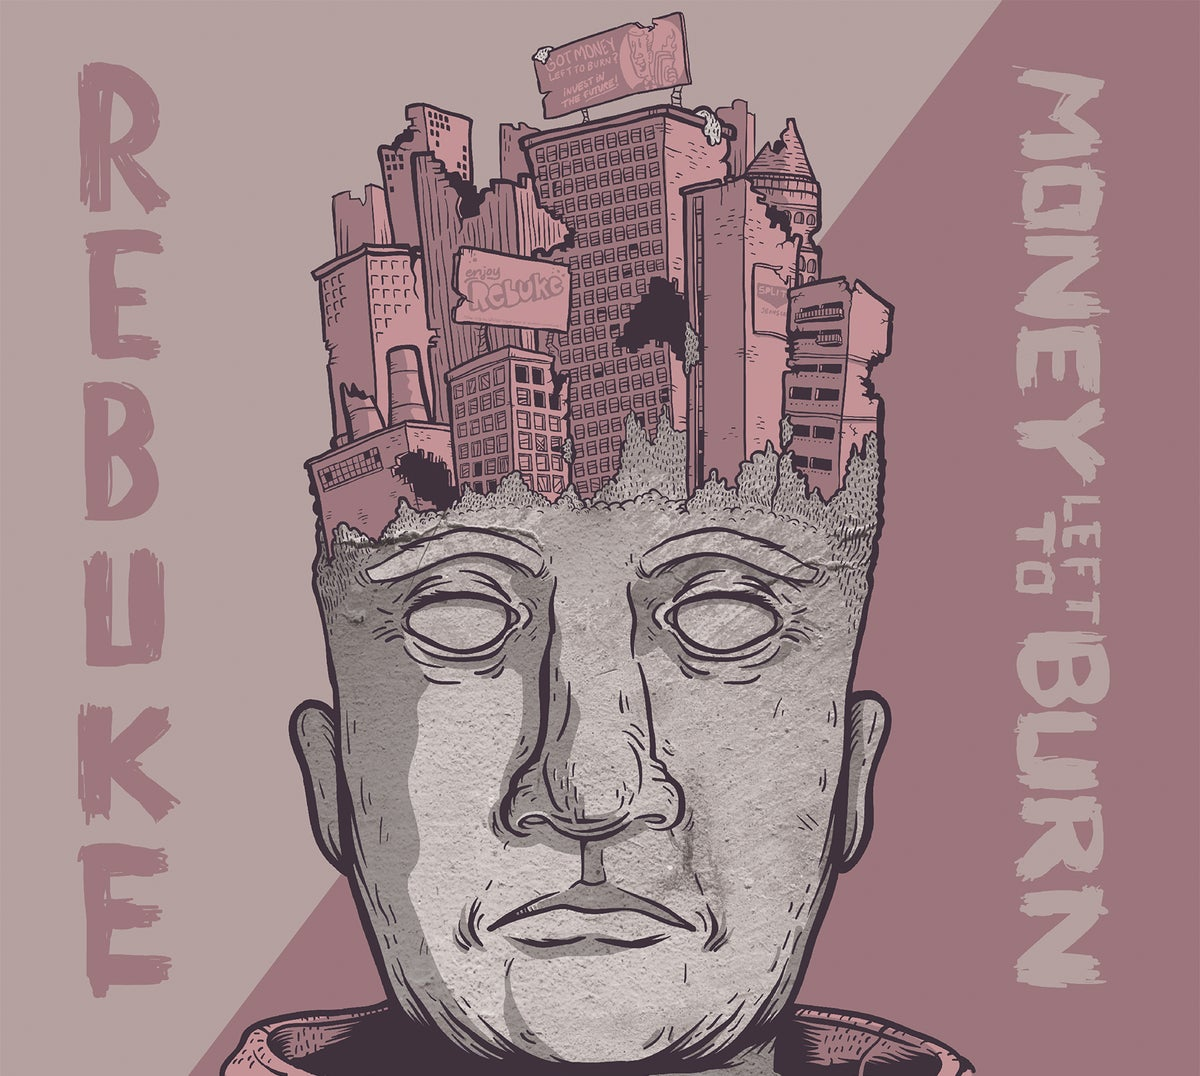 Rebuke / Money Left To Burn - Split